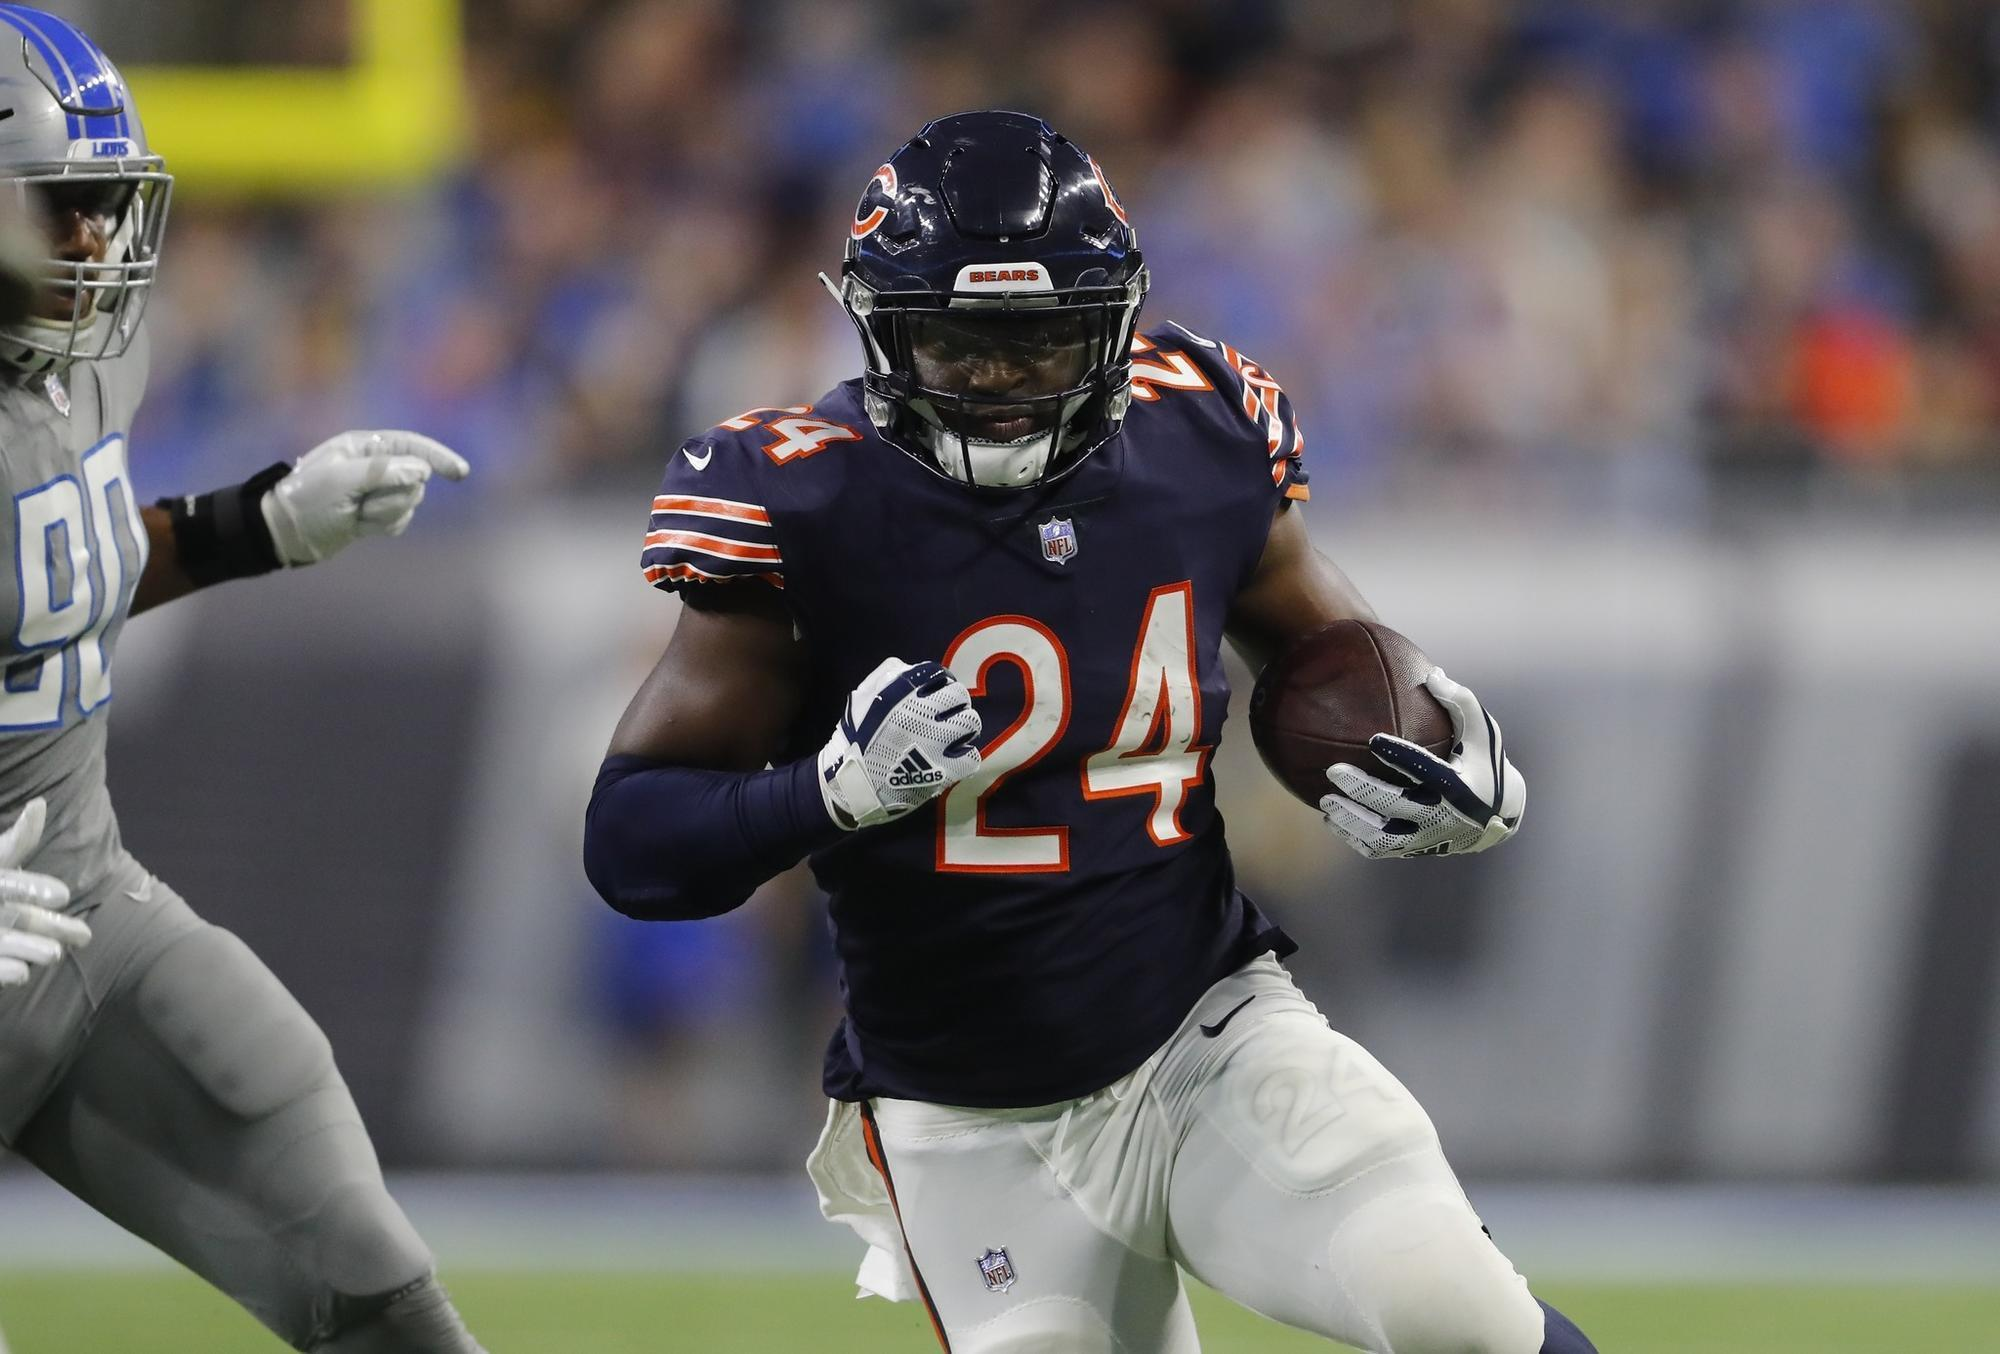 Ct-spt-bears-jordan-howard-season-review-20180205